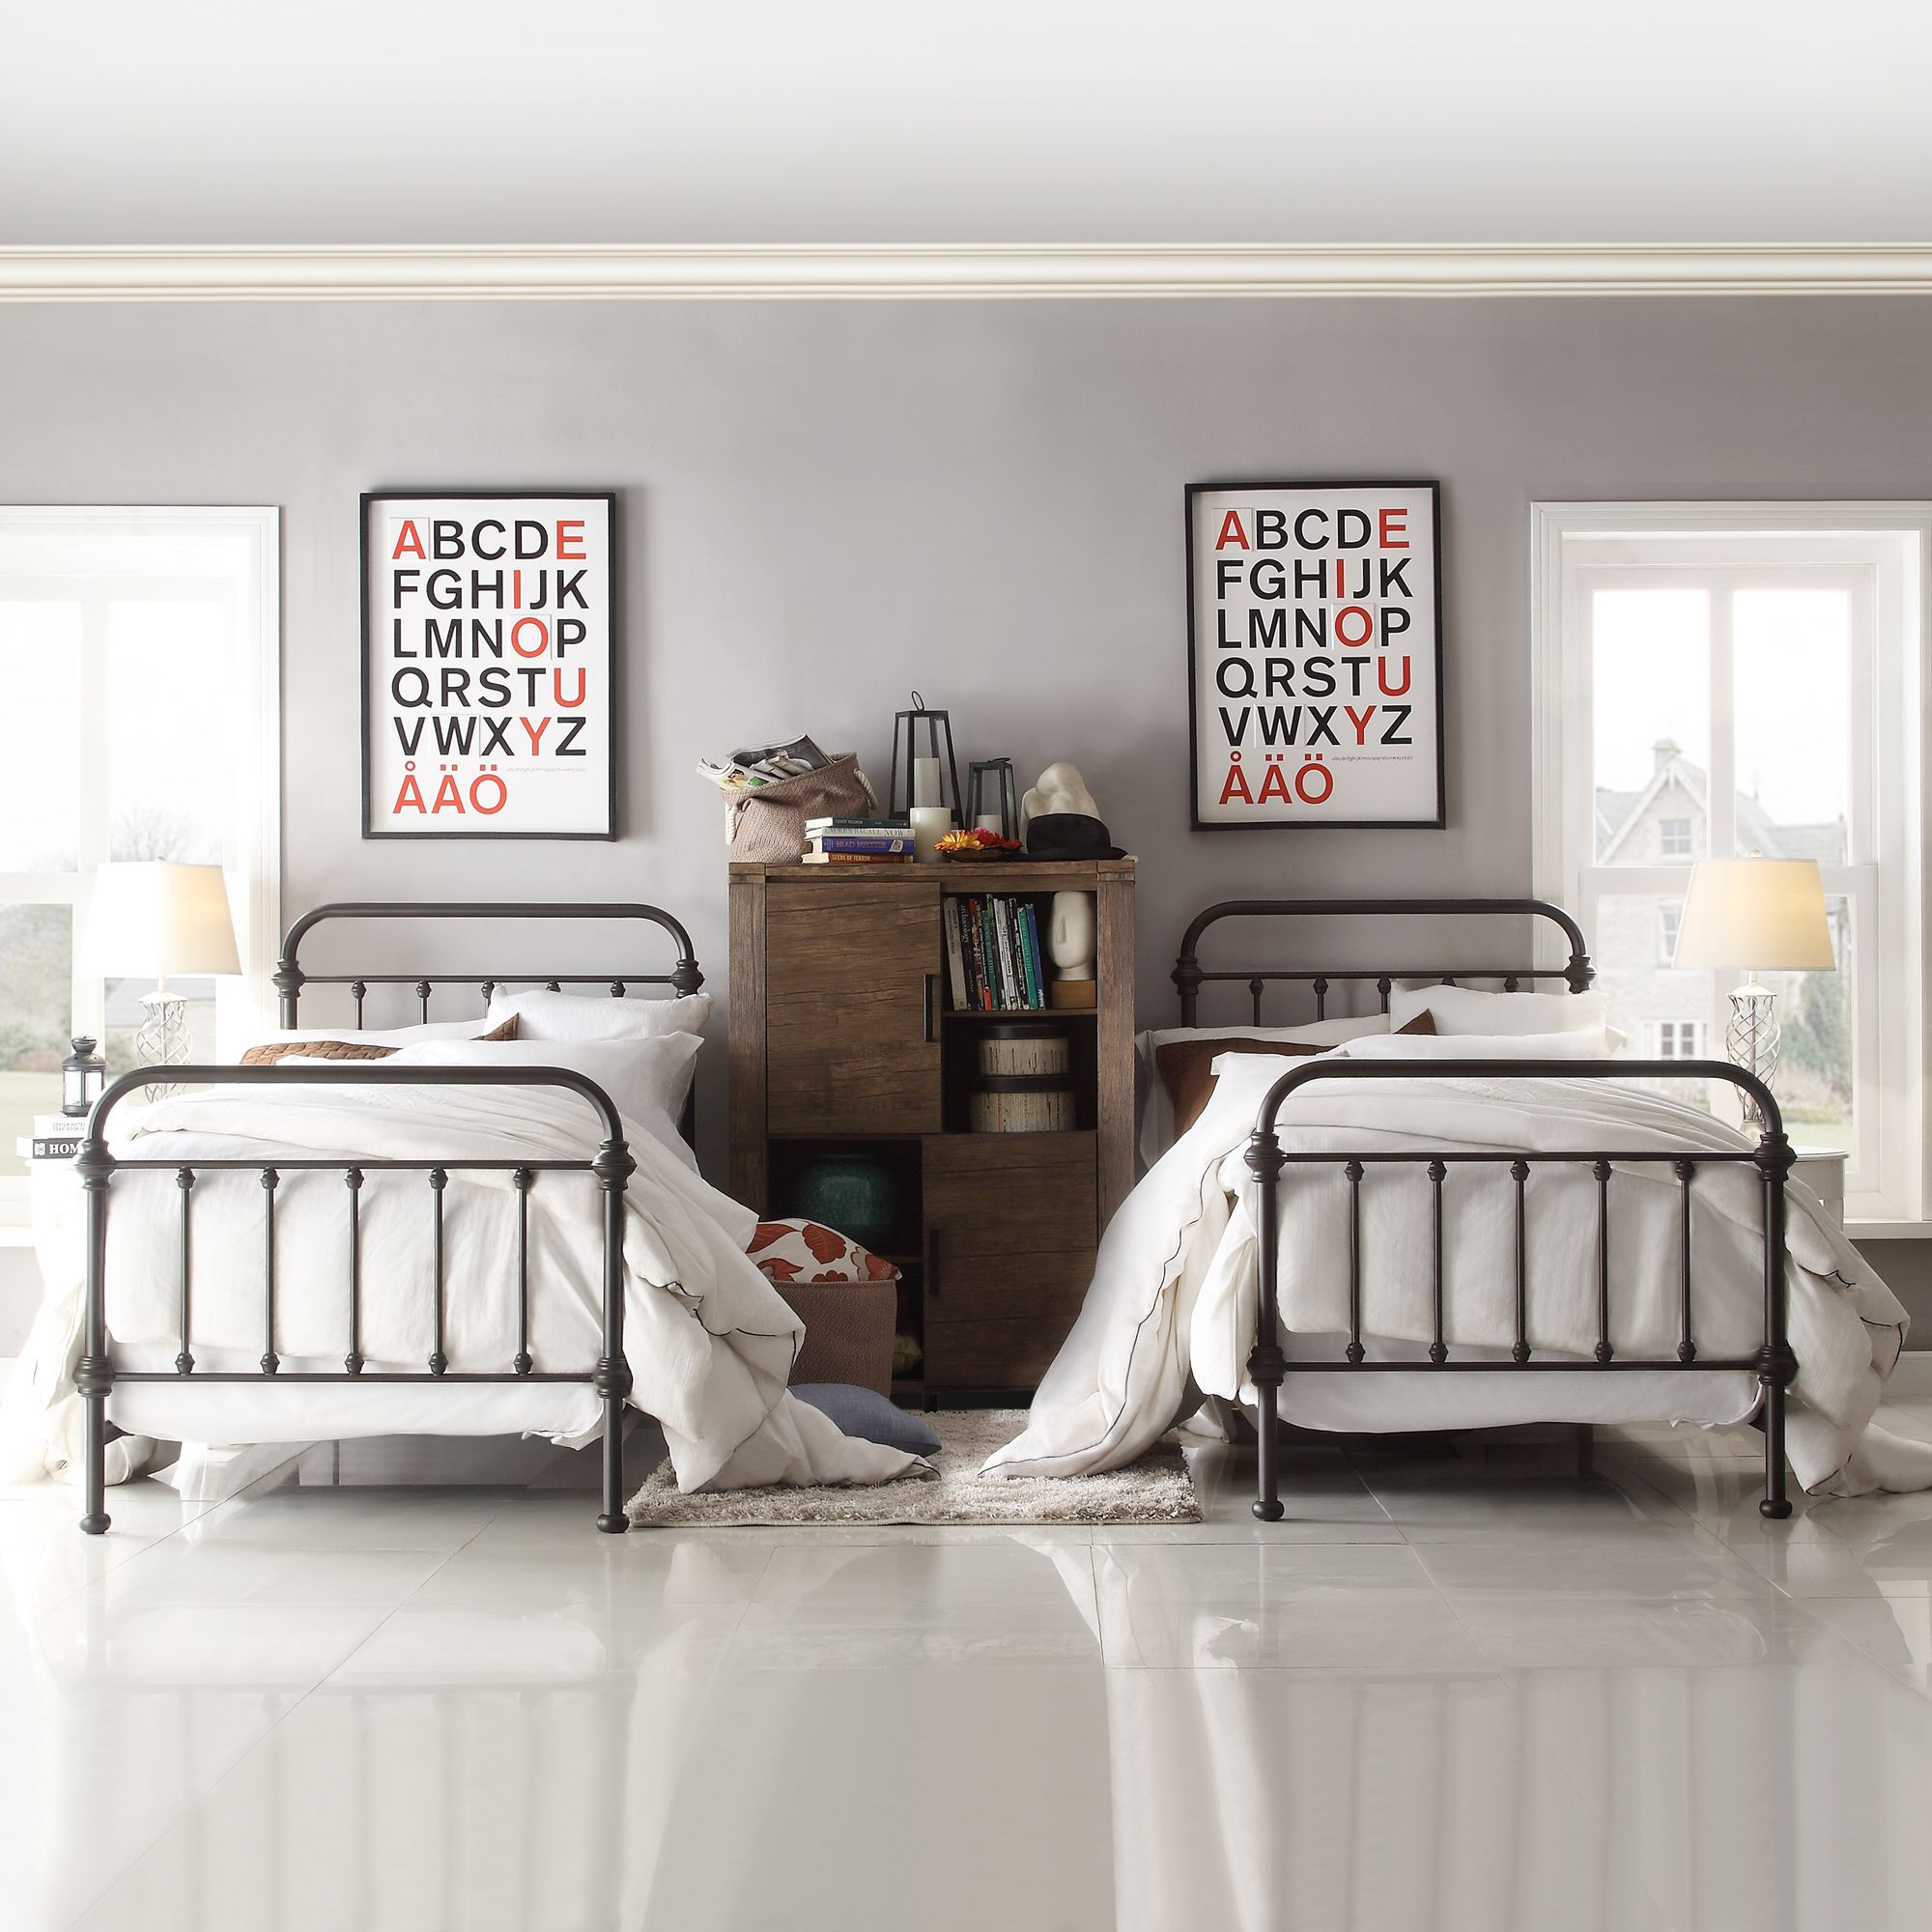 Ensure Repeat Guests With These Pro Tips On Guest Rooms 1